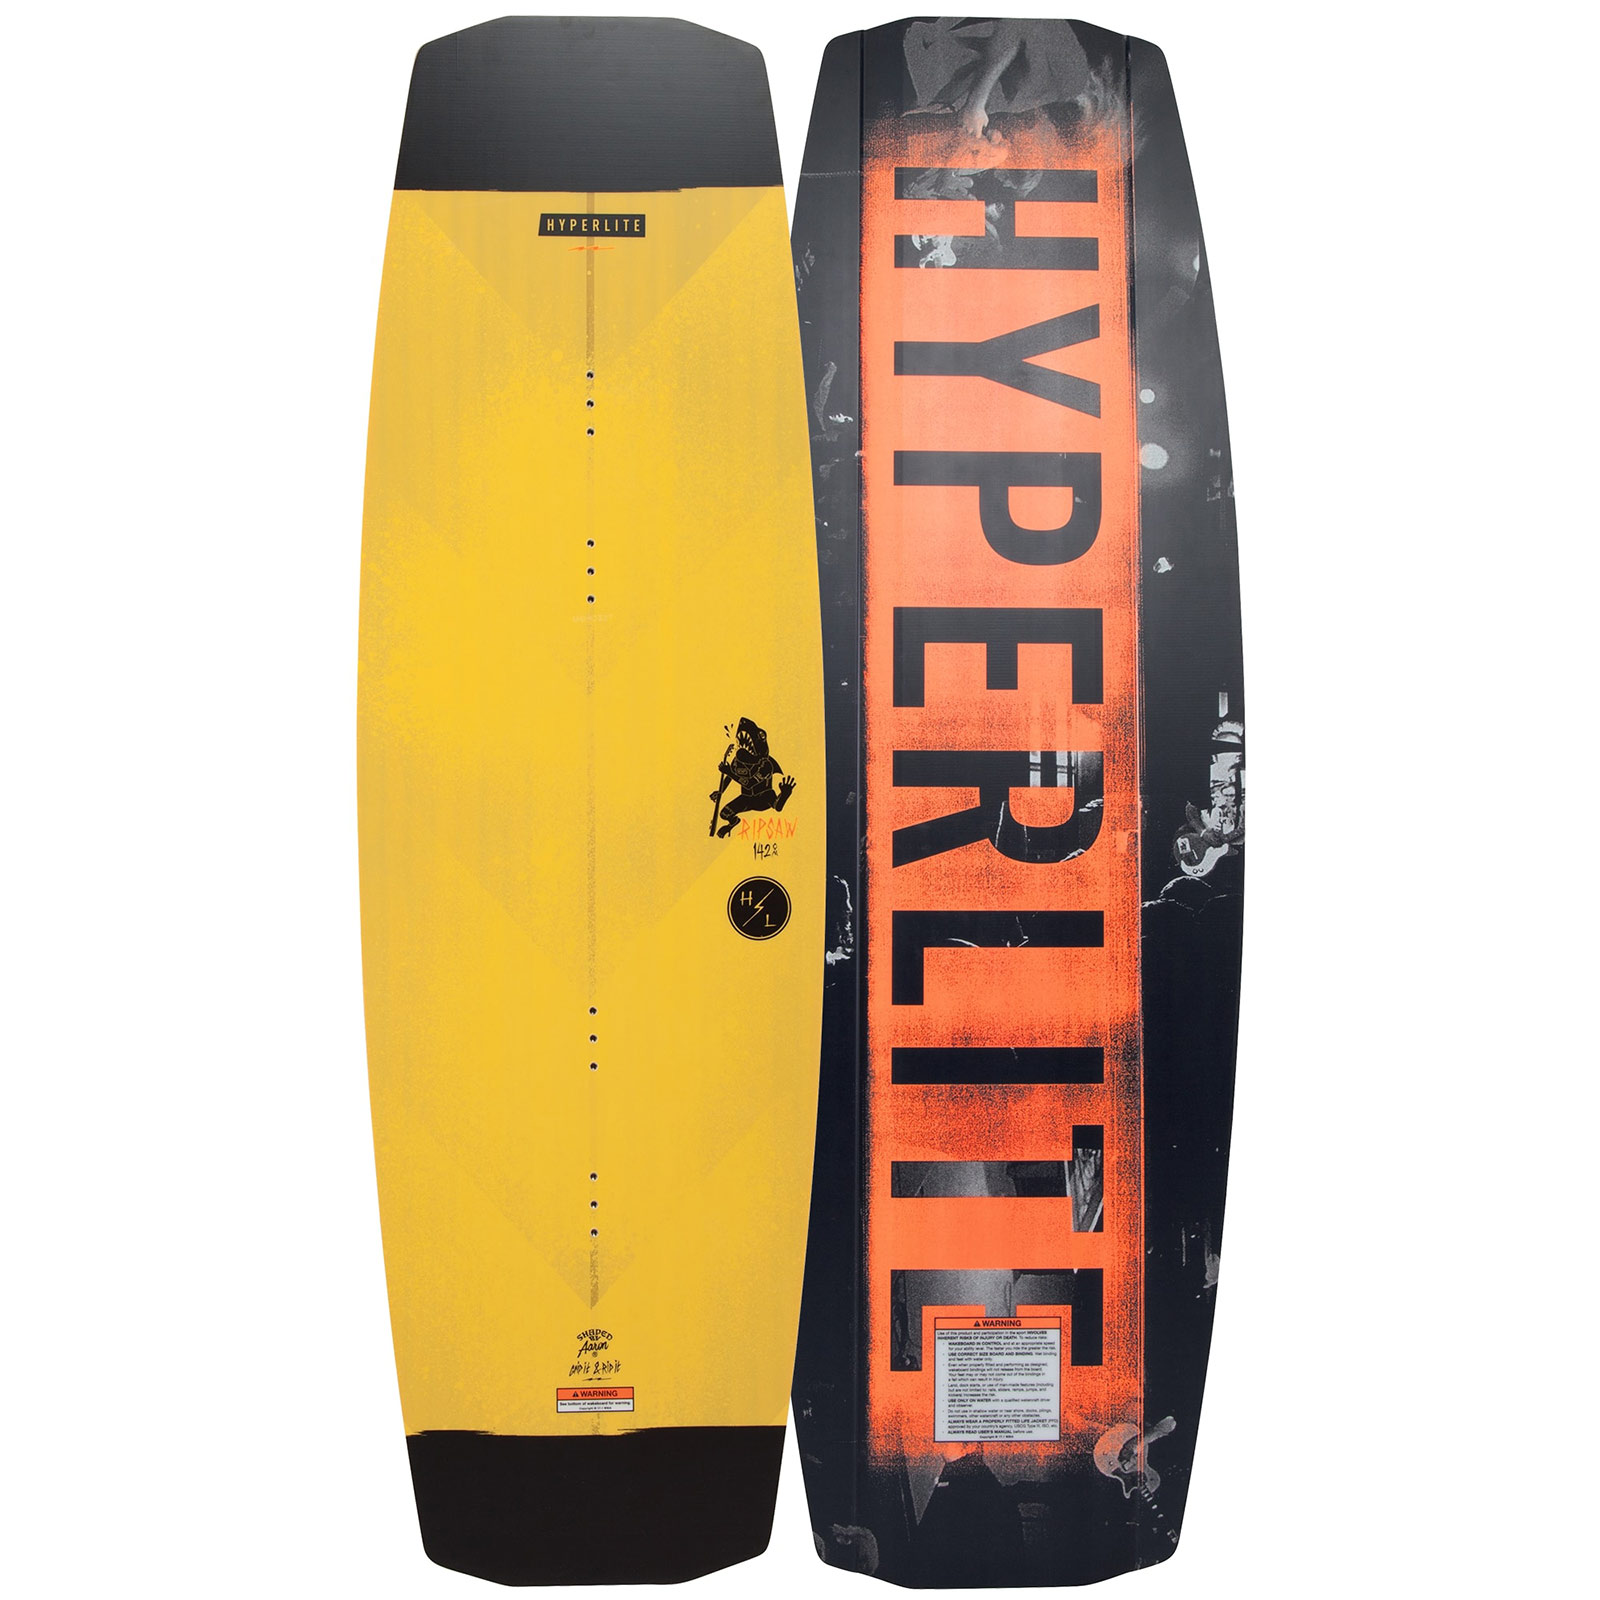 PLACA WAKEBOARD RIPSAW 142 WAKEBOARD HYPERLITE 2019